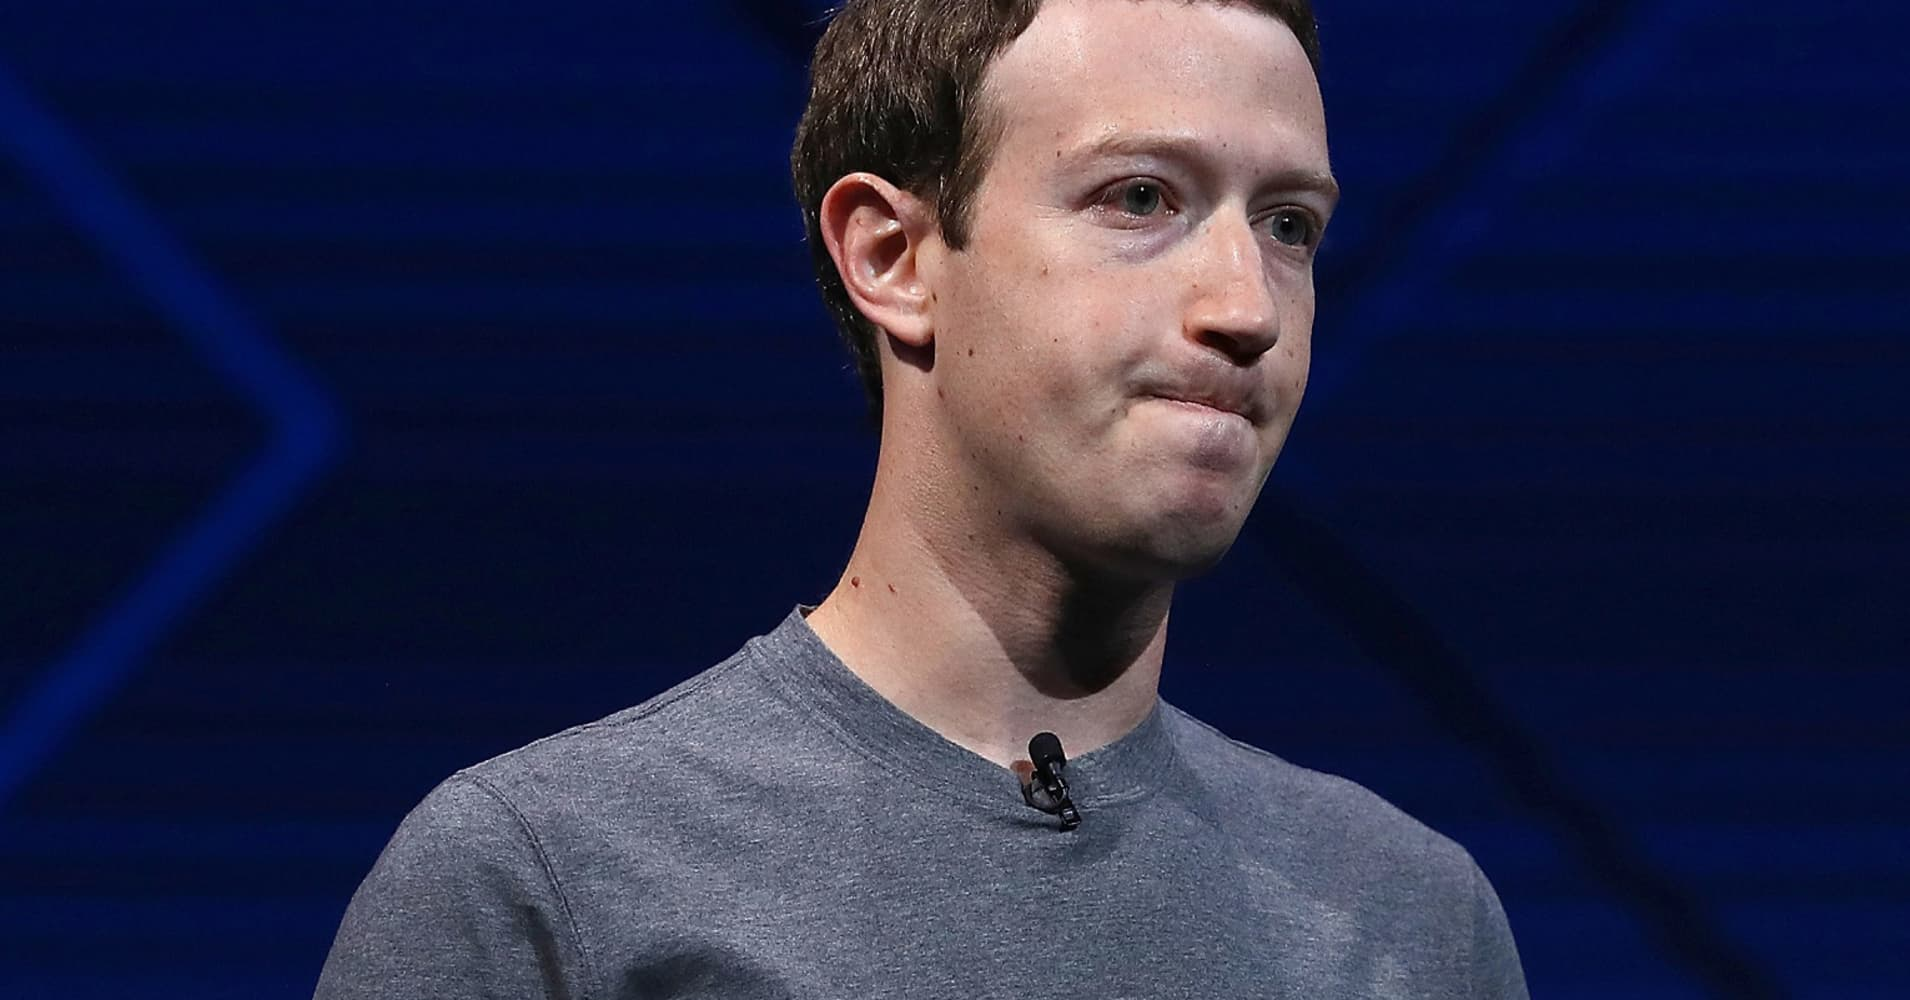 Facebook founder Mark Zuckerberg asked to lower his salary to 1 per year 30.04.2013 96